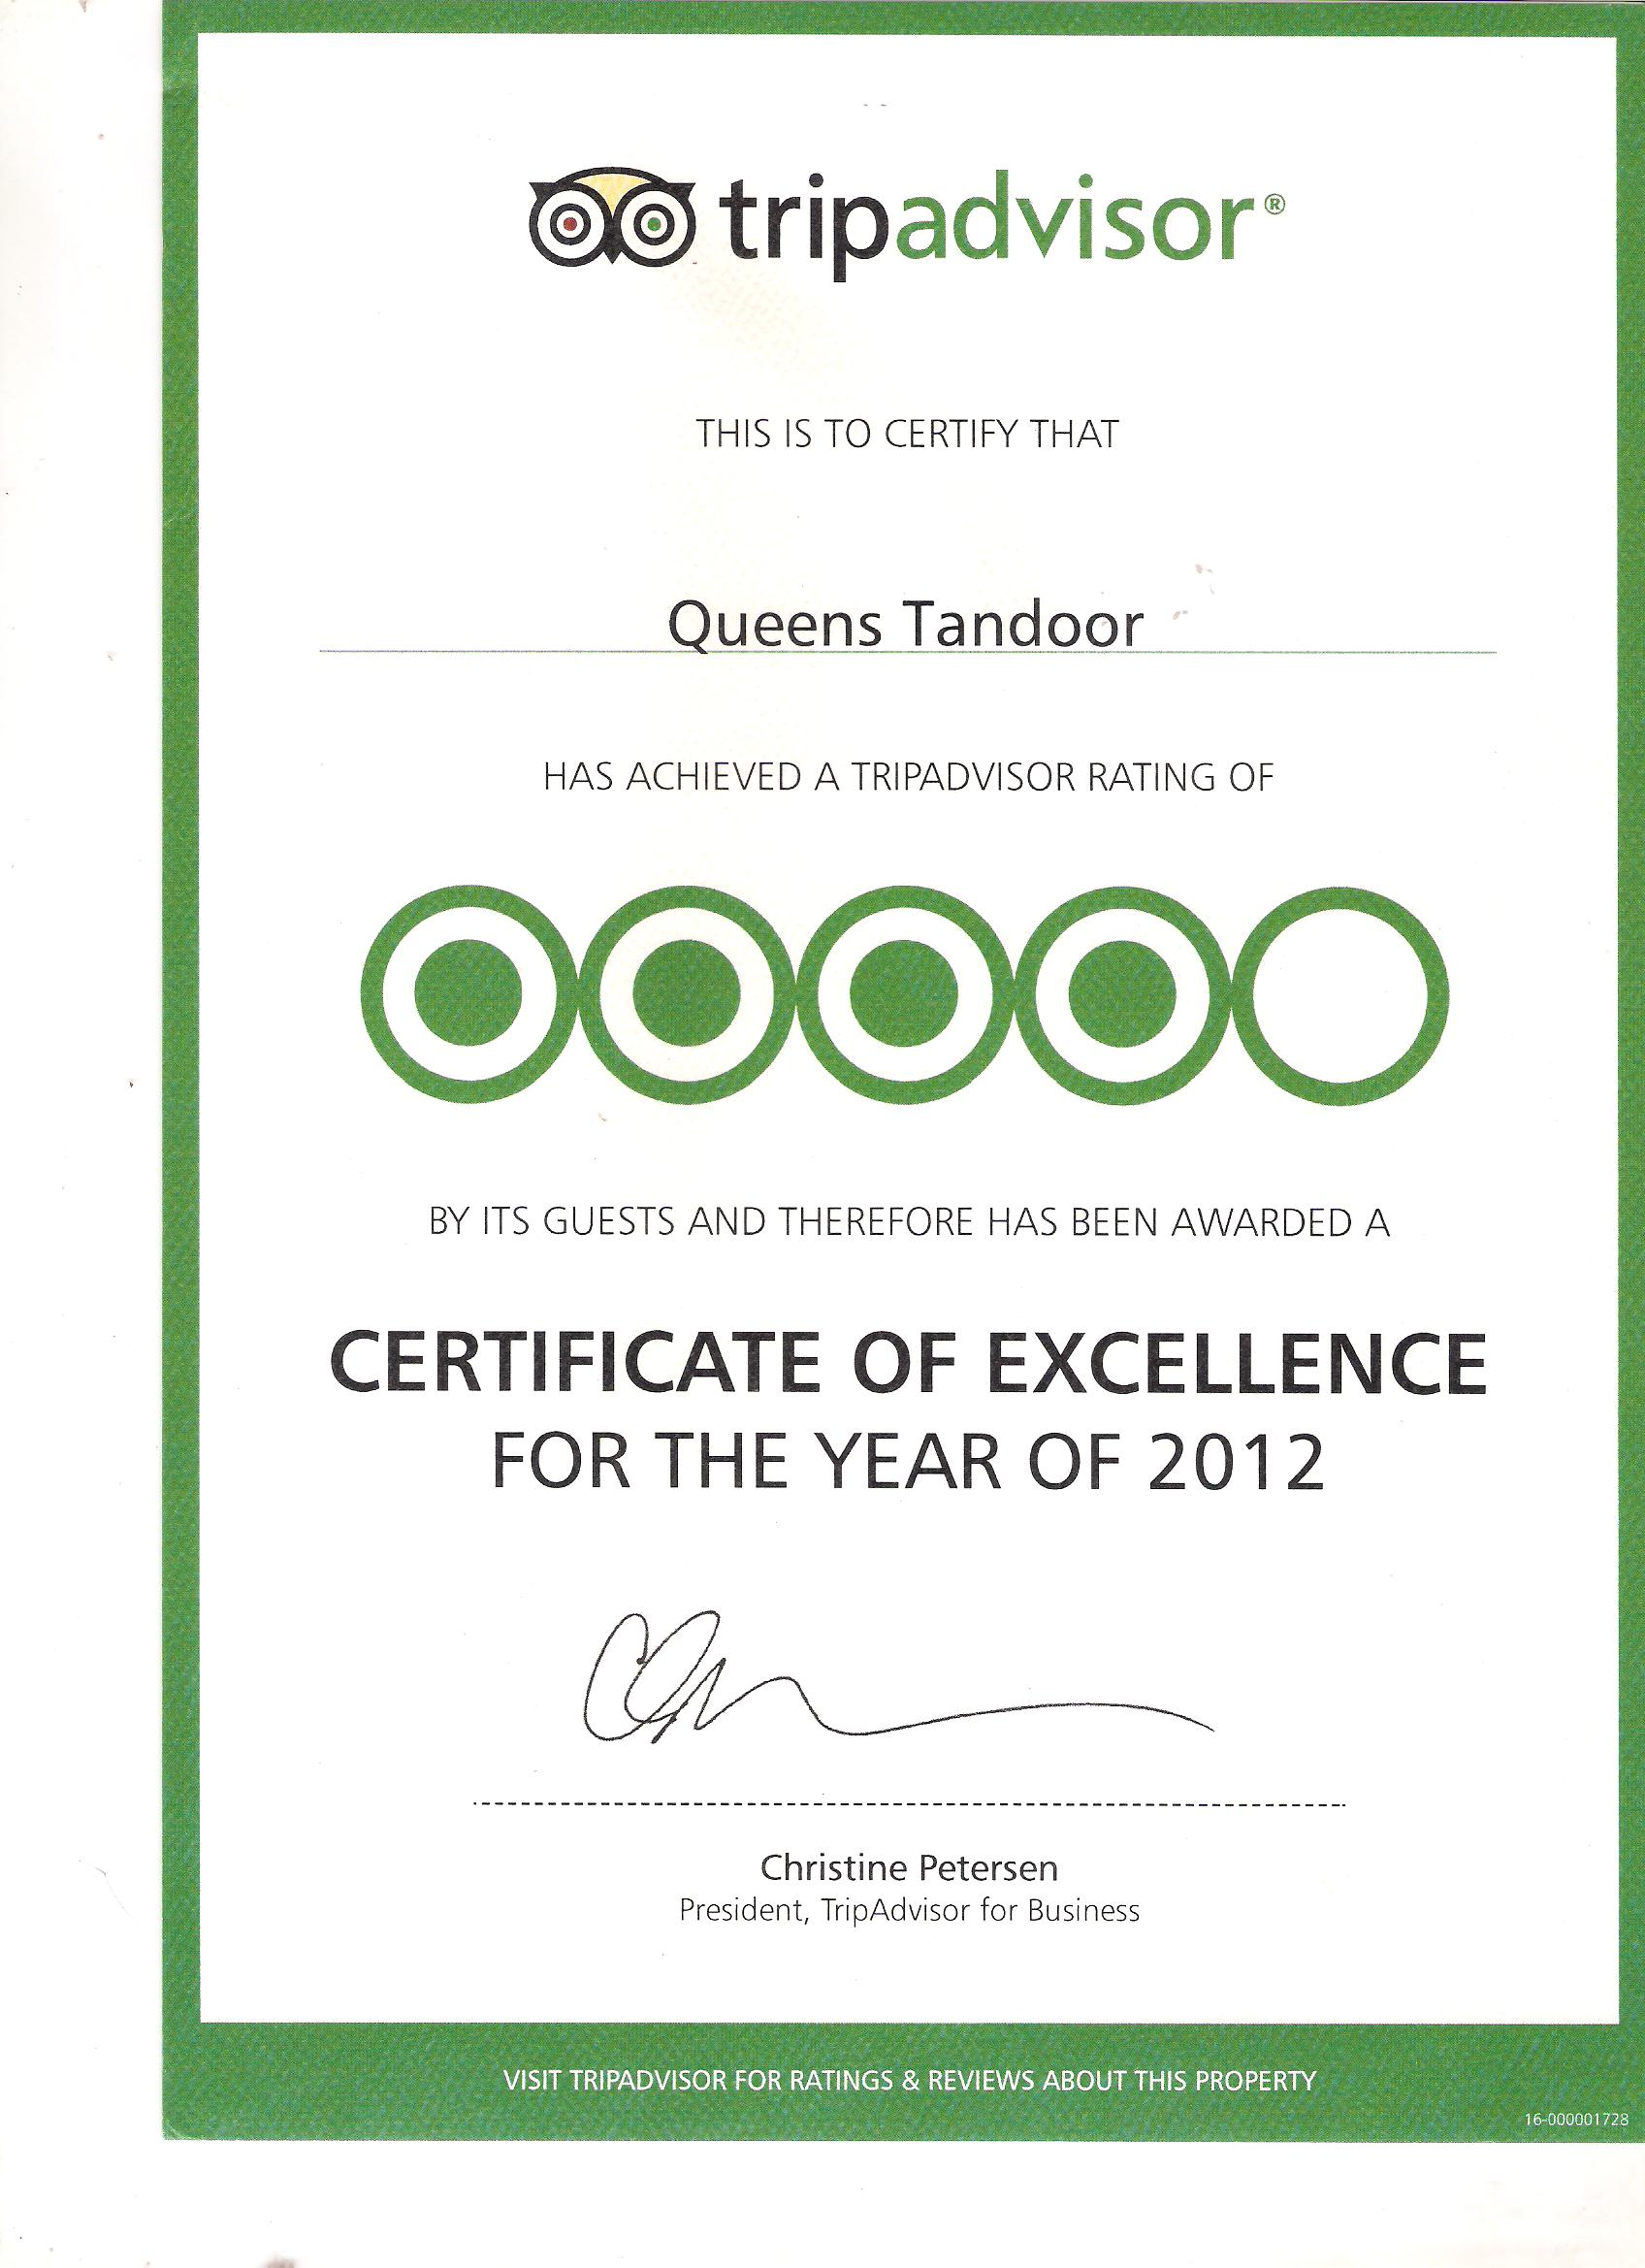 Certificate Of Excellence Queens Tandoor from Tripadvisor 2012